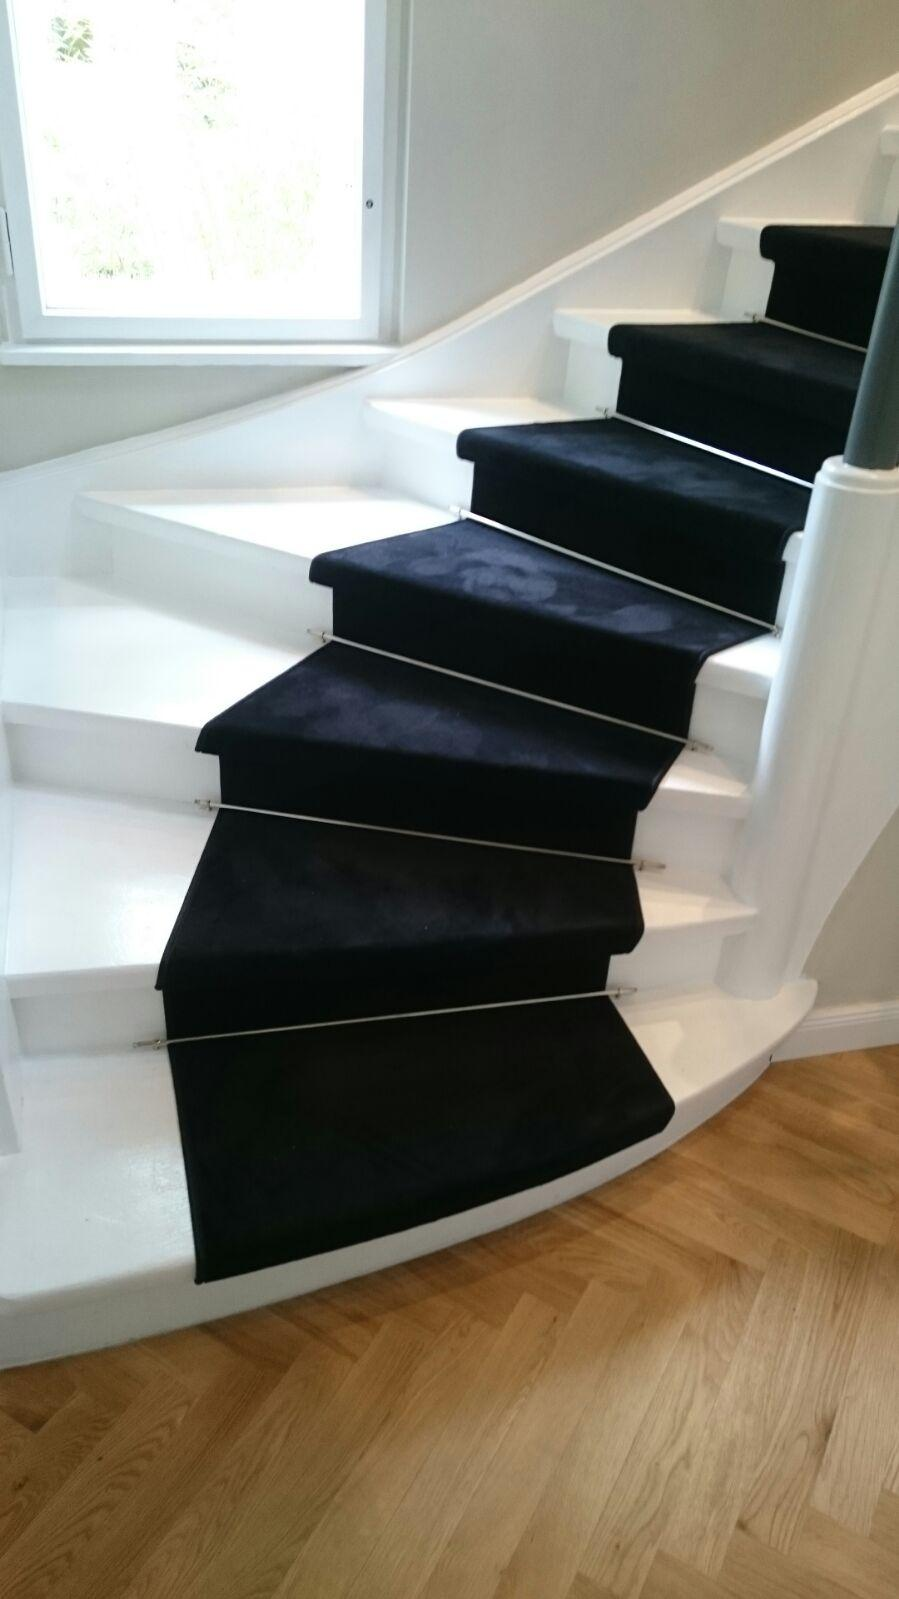 treppe mit teppich verlegen cq93 hitoiro. Black Bedroom Furniture Sets. Home Design Ideas